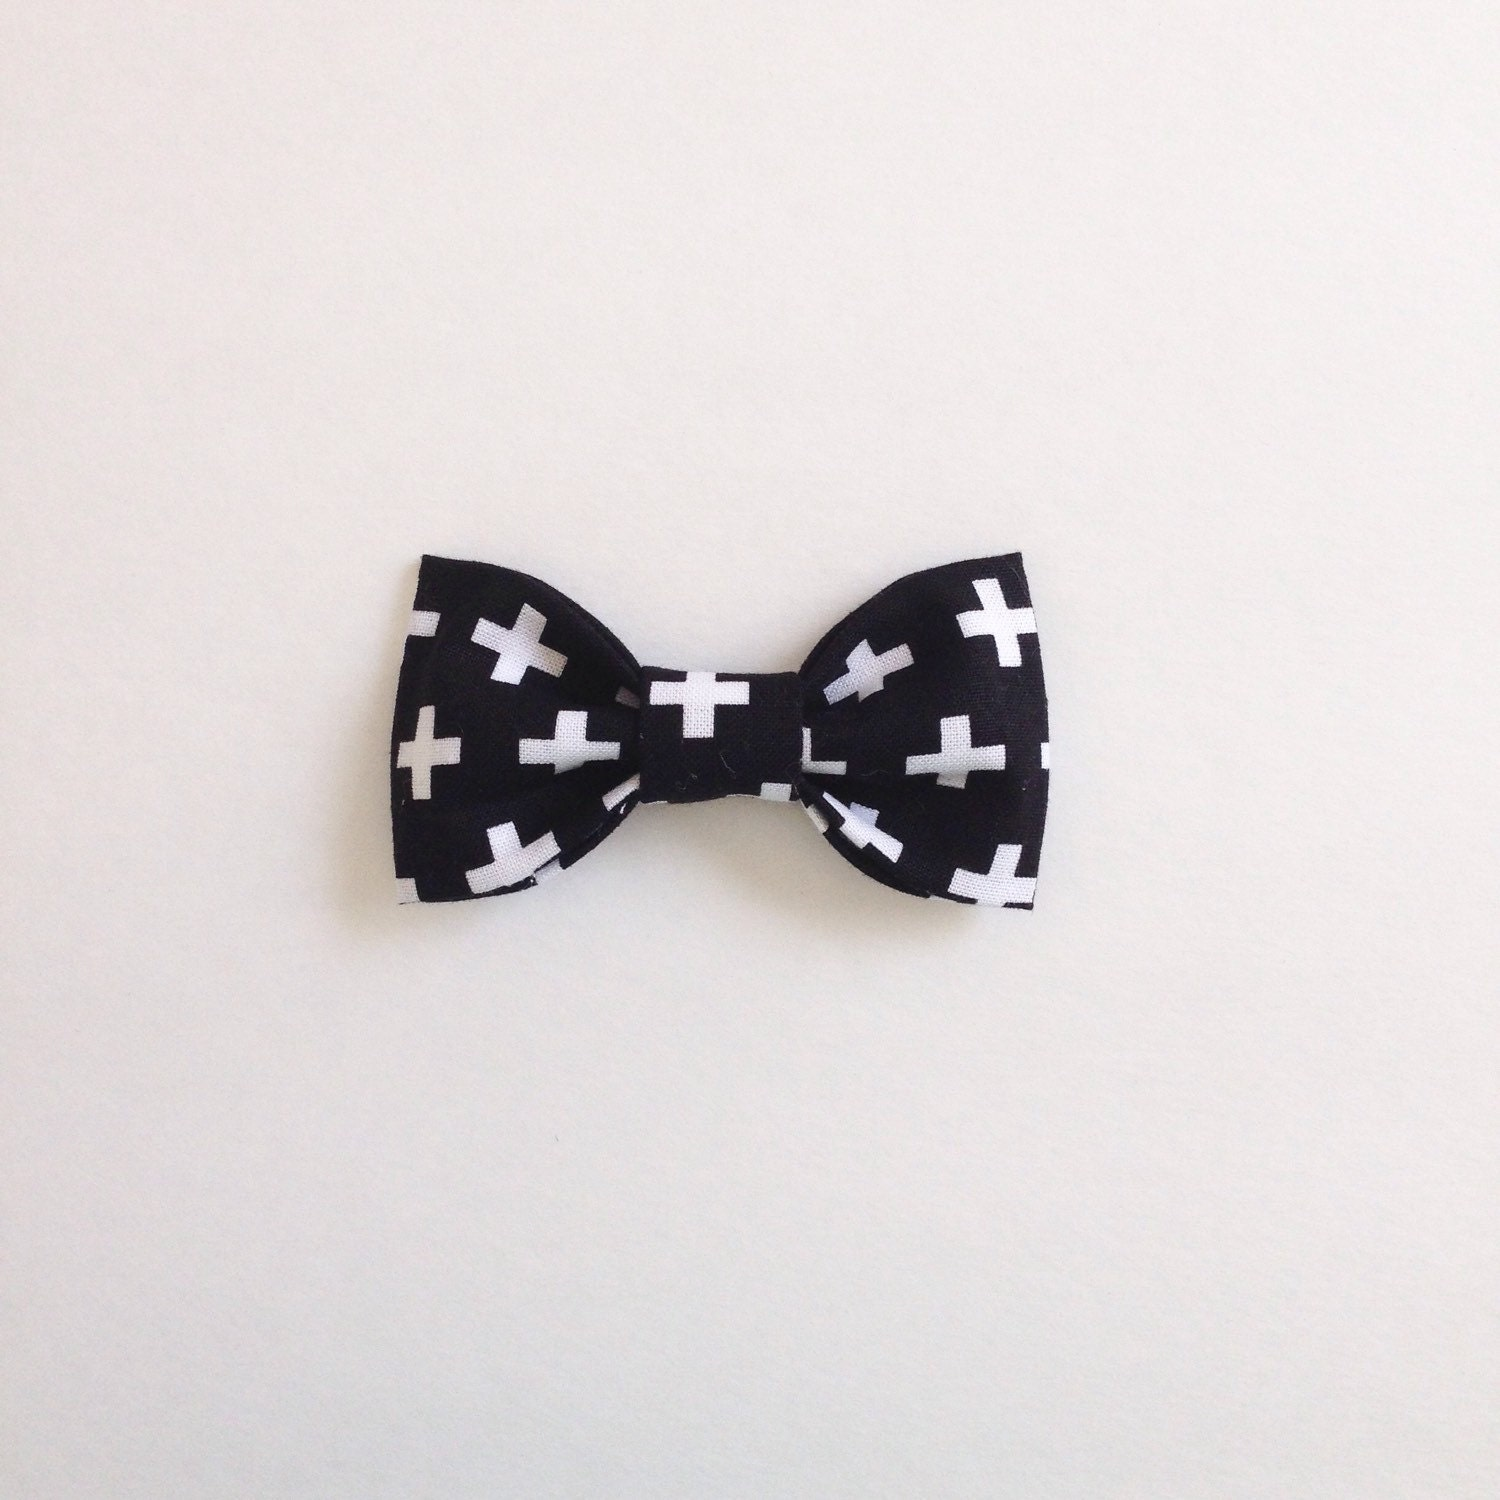 Black And White Plus. Bow Tie Hair Clip Or Clip On Bow Tie: